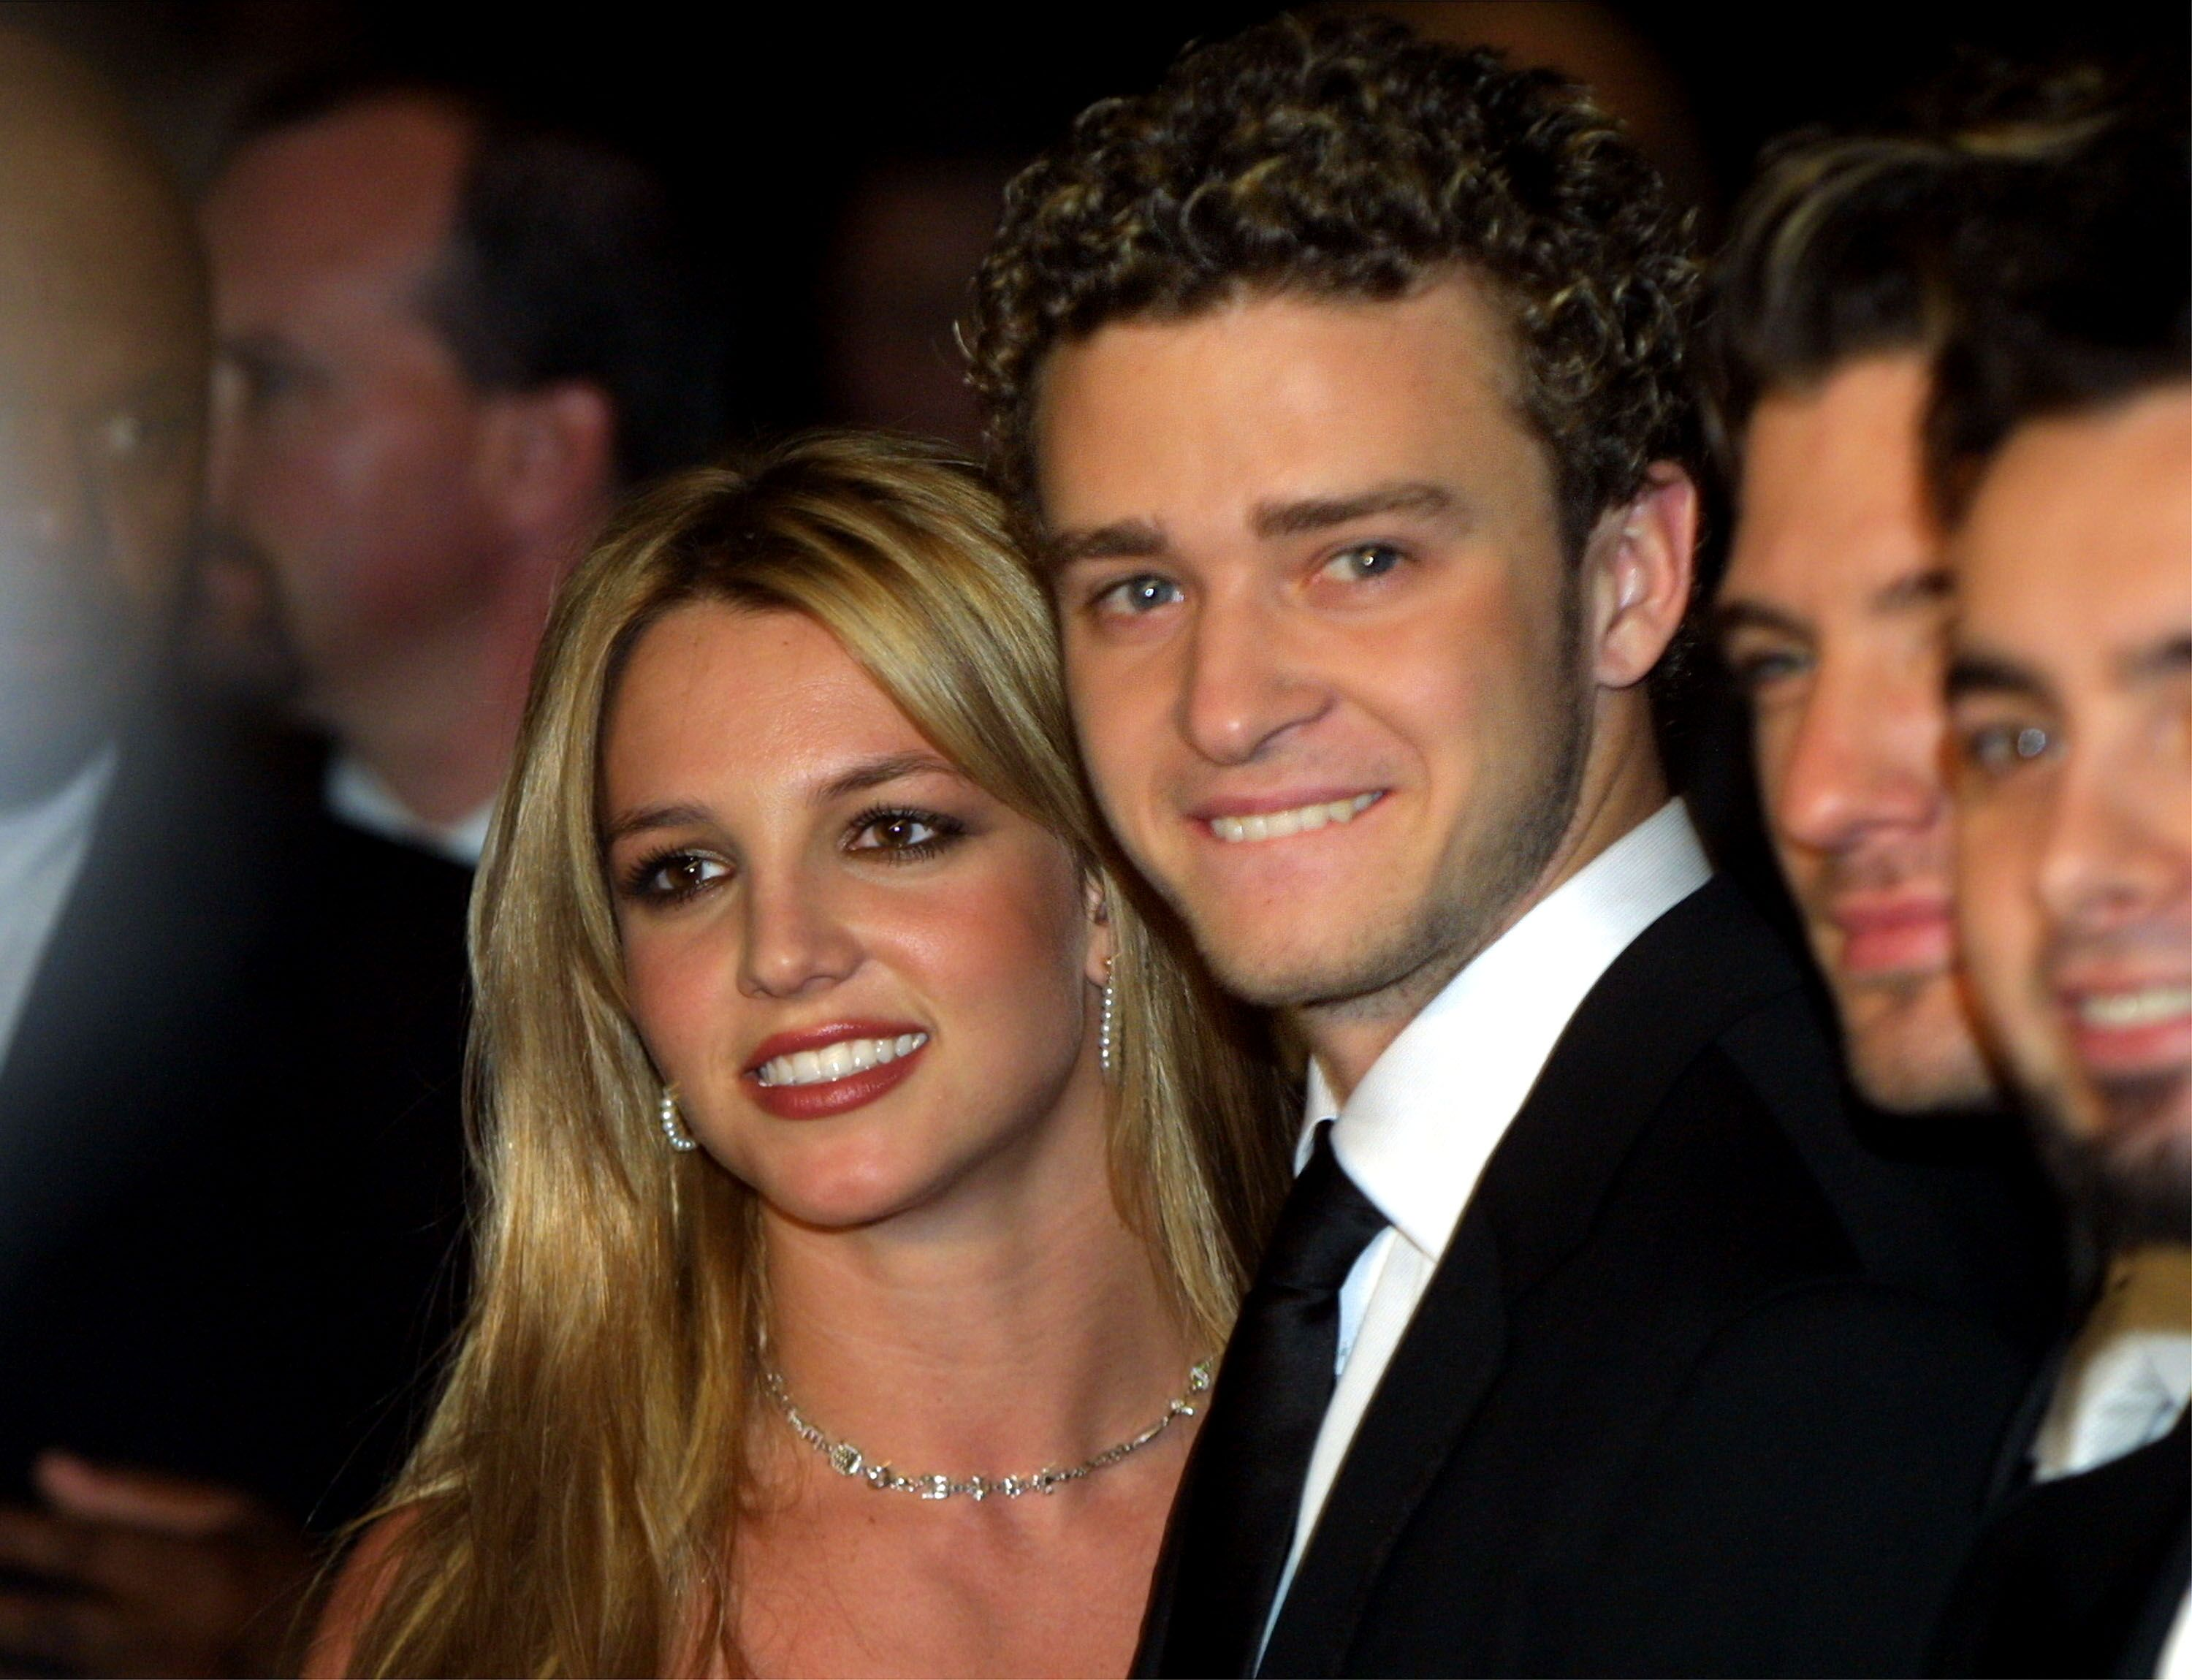 Britney Spears and Justin Timberlake arrive at Clive Davis'' pre-grammy awards gala. | Source: Getty Images